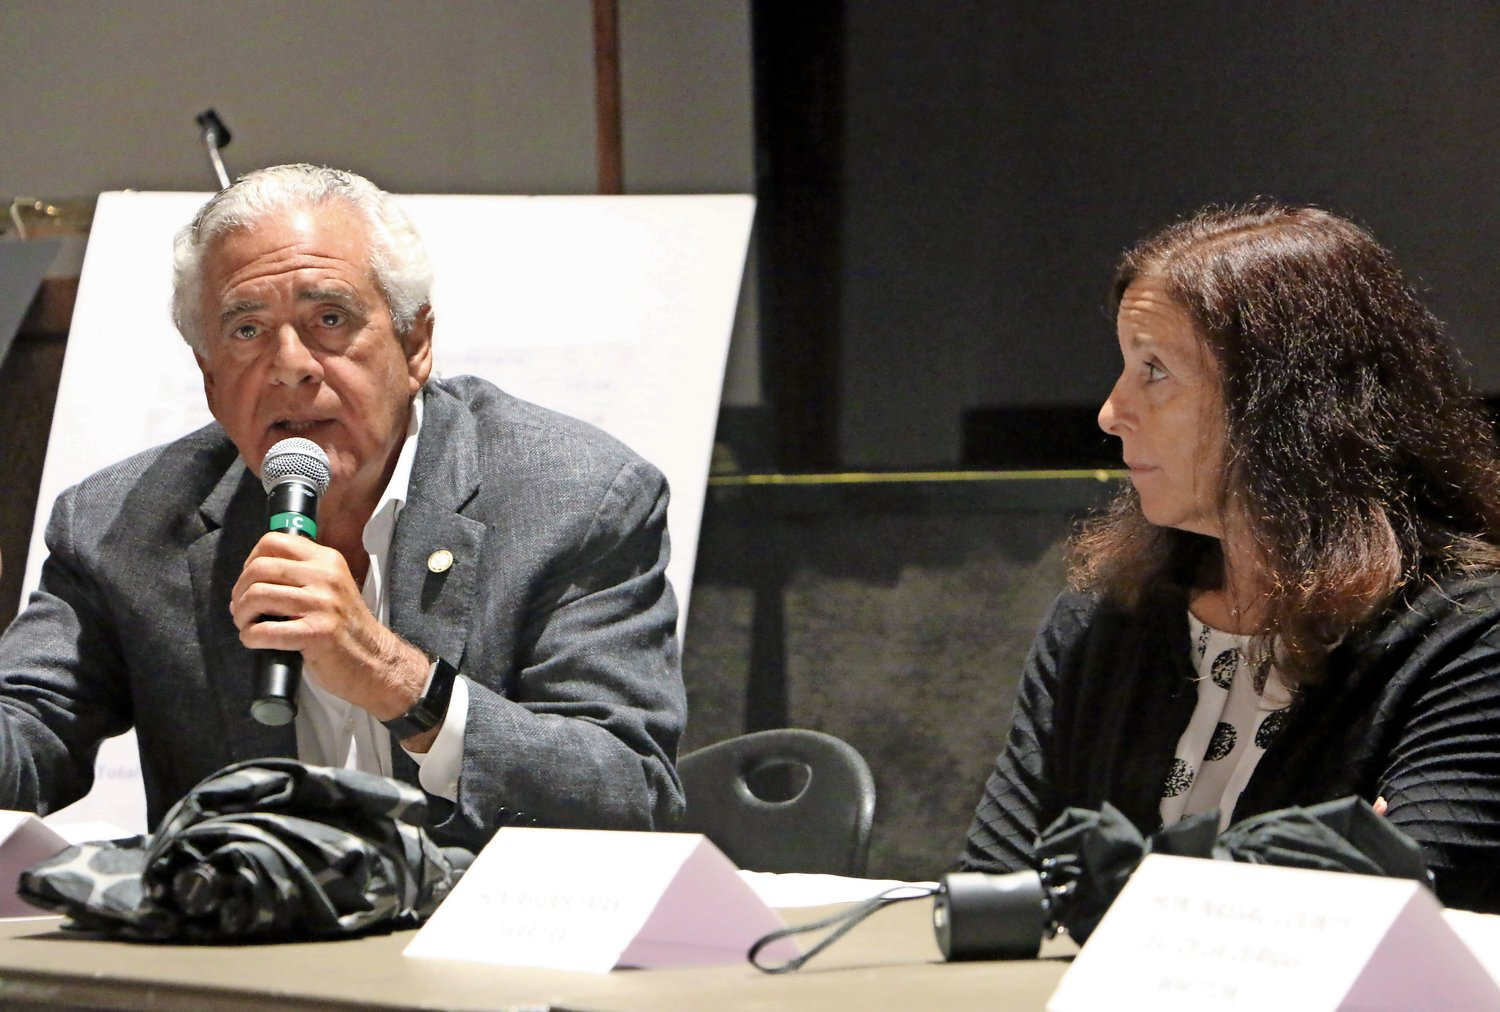 Sea Cliff Mayor Ed Lieberman, left, and Adrienne Esposito, executive director of Citizens Campaign for the Environment, said residents should use their collective voice to oust NYAW.